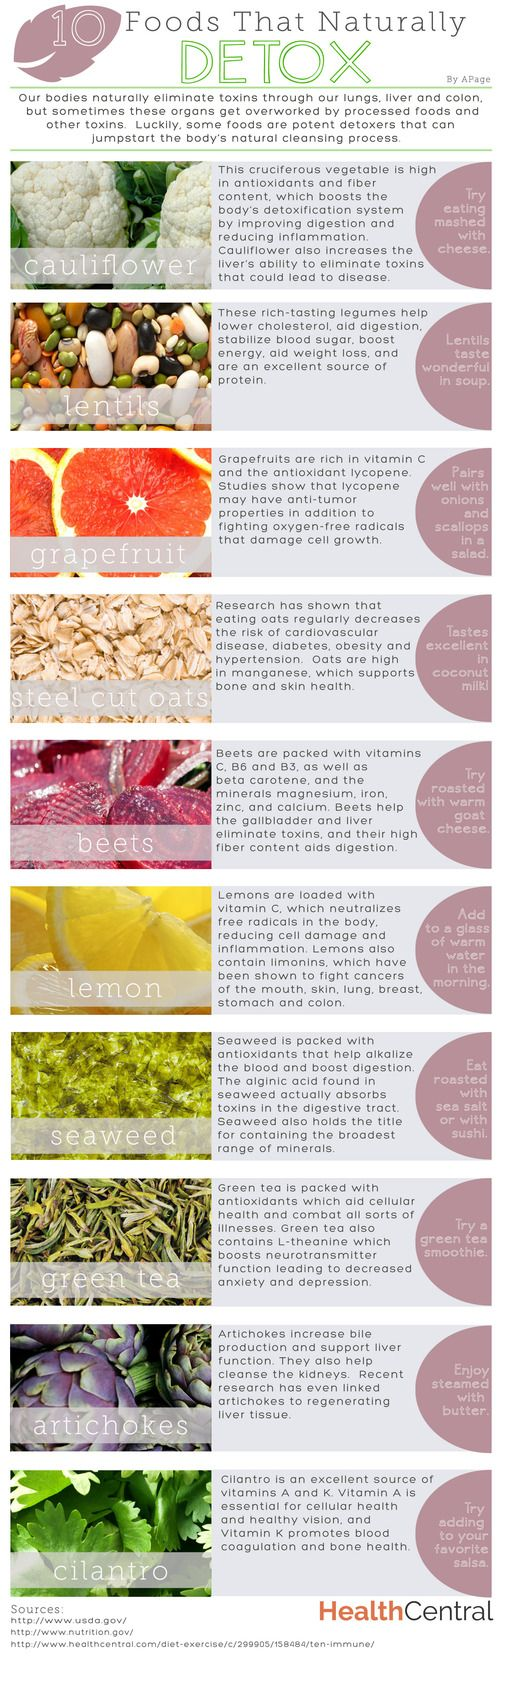 Foods that naturally detox - nutrition design